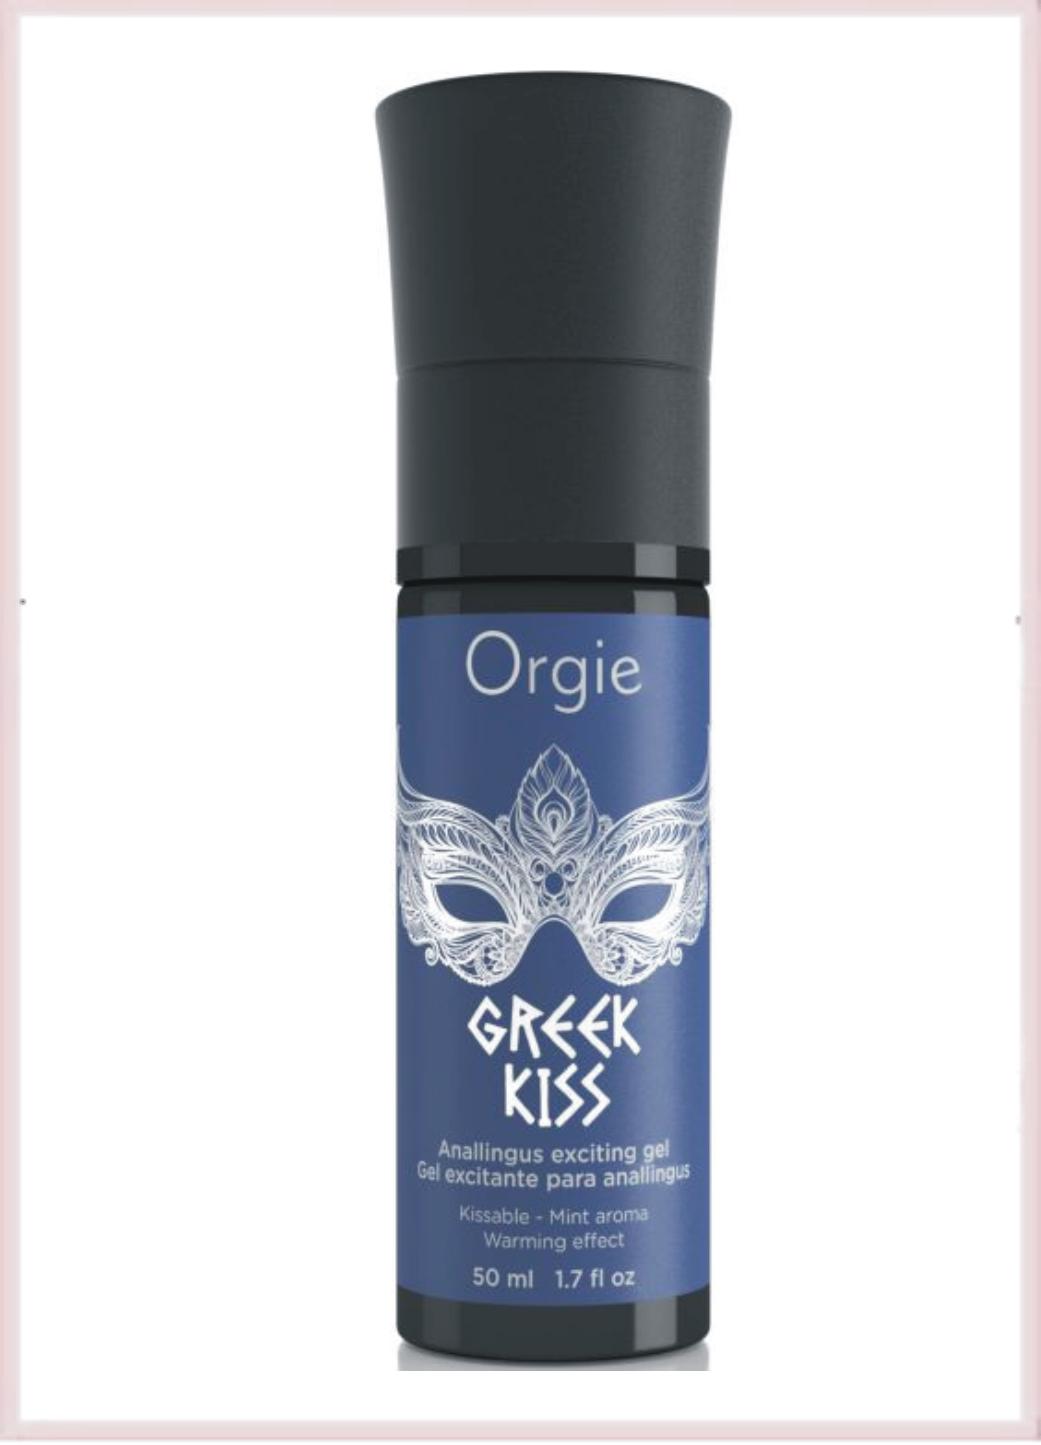 Gel eccitante per anallingus greek kiss